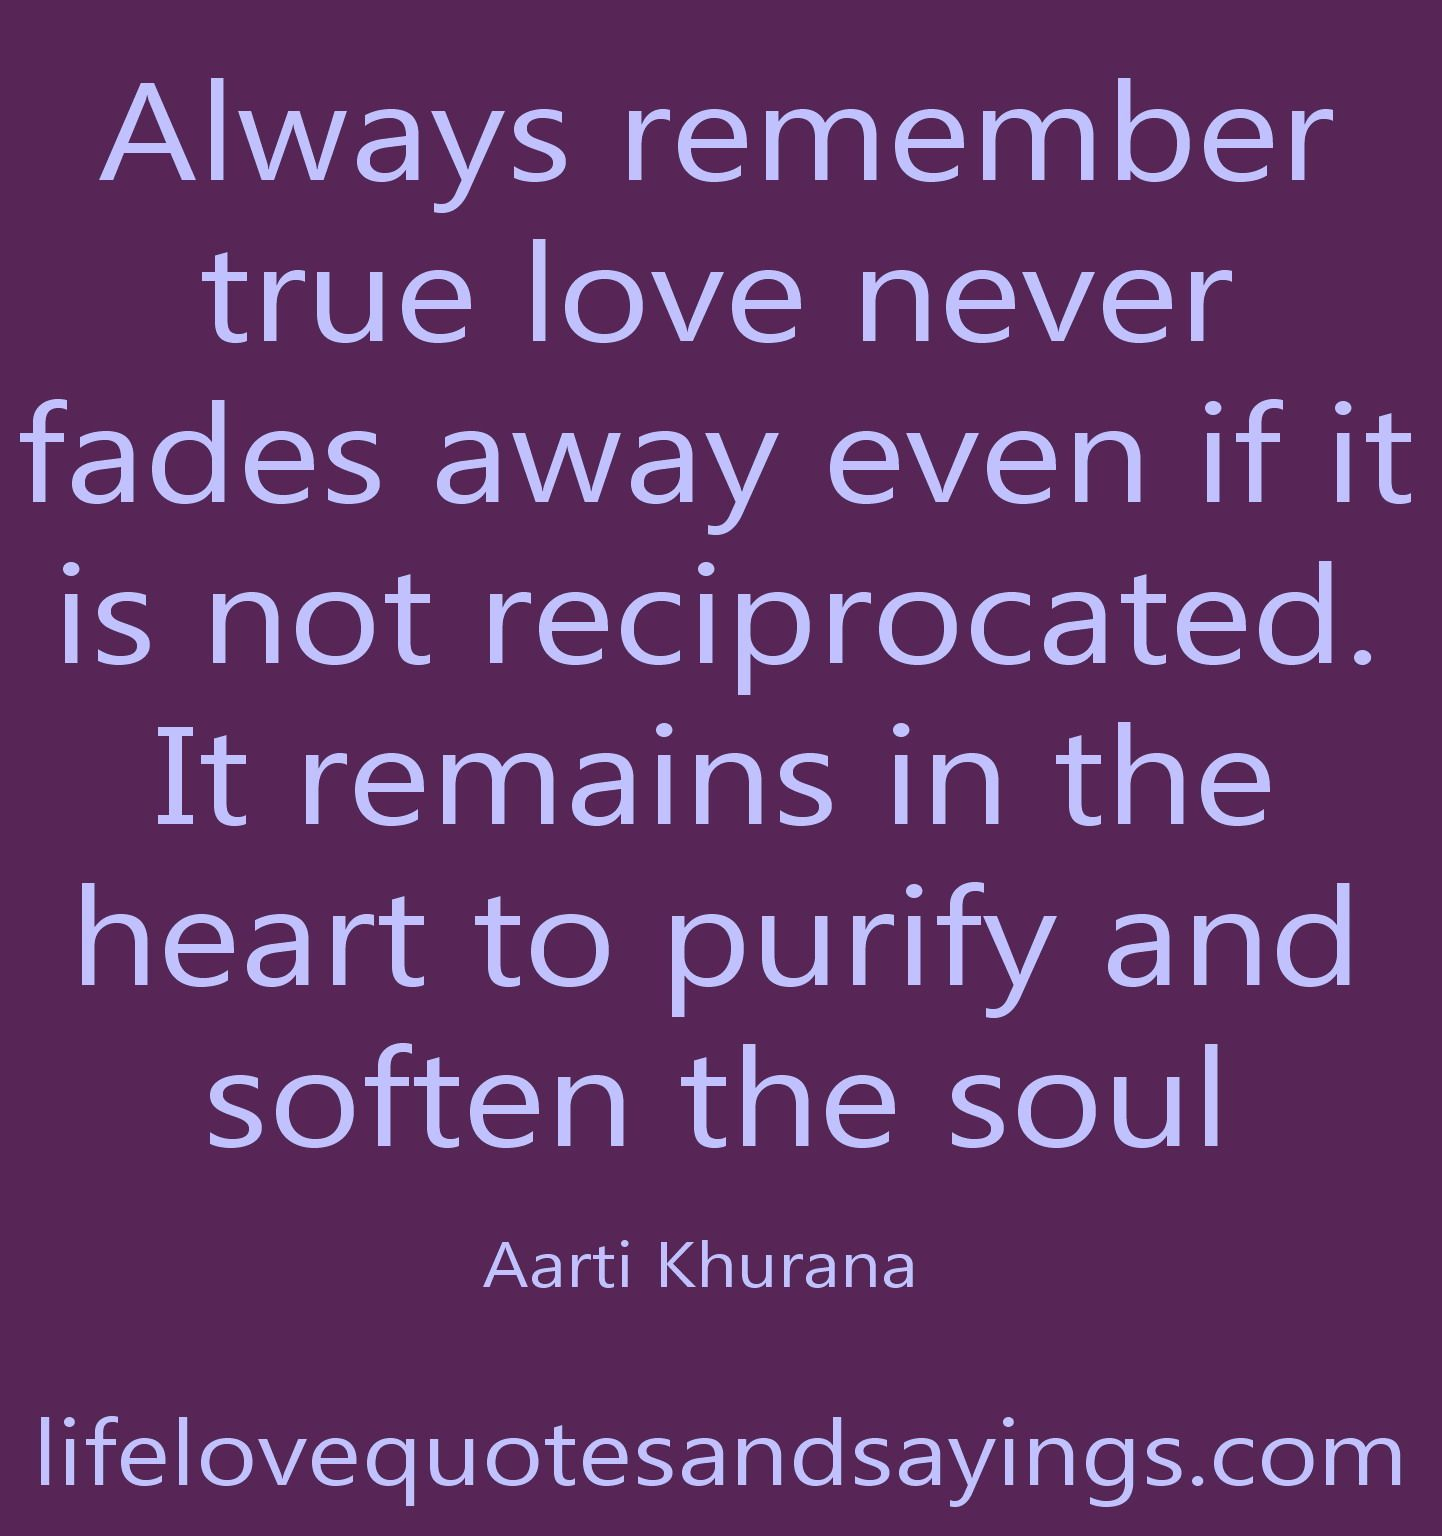 Always remember true love never fades away even if it is not reciprocated It remains in the heart to purify and soften the soul …Aarti khurana